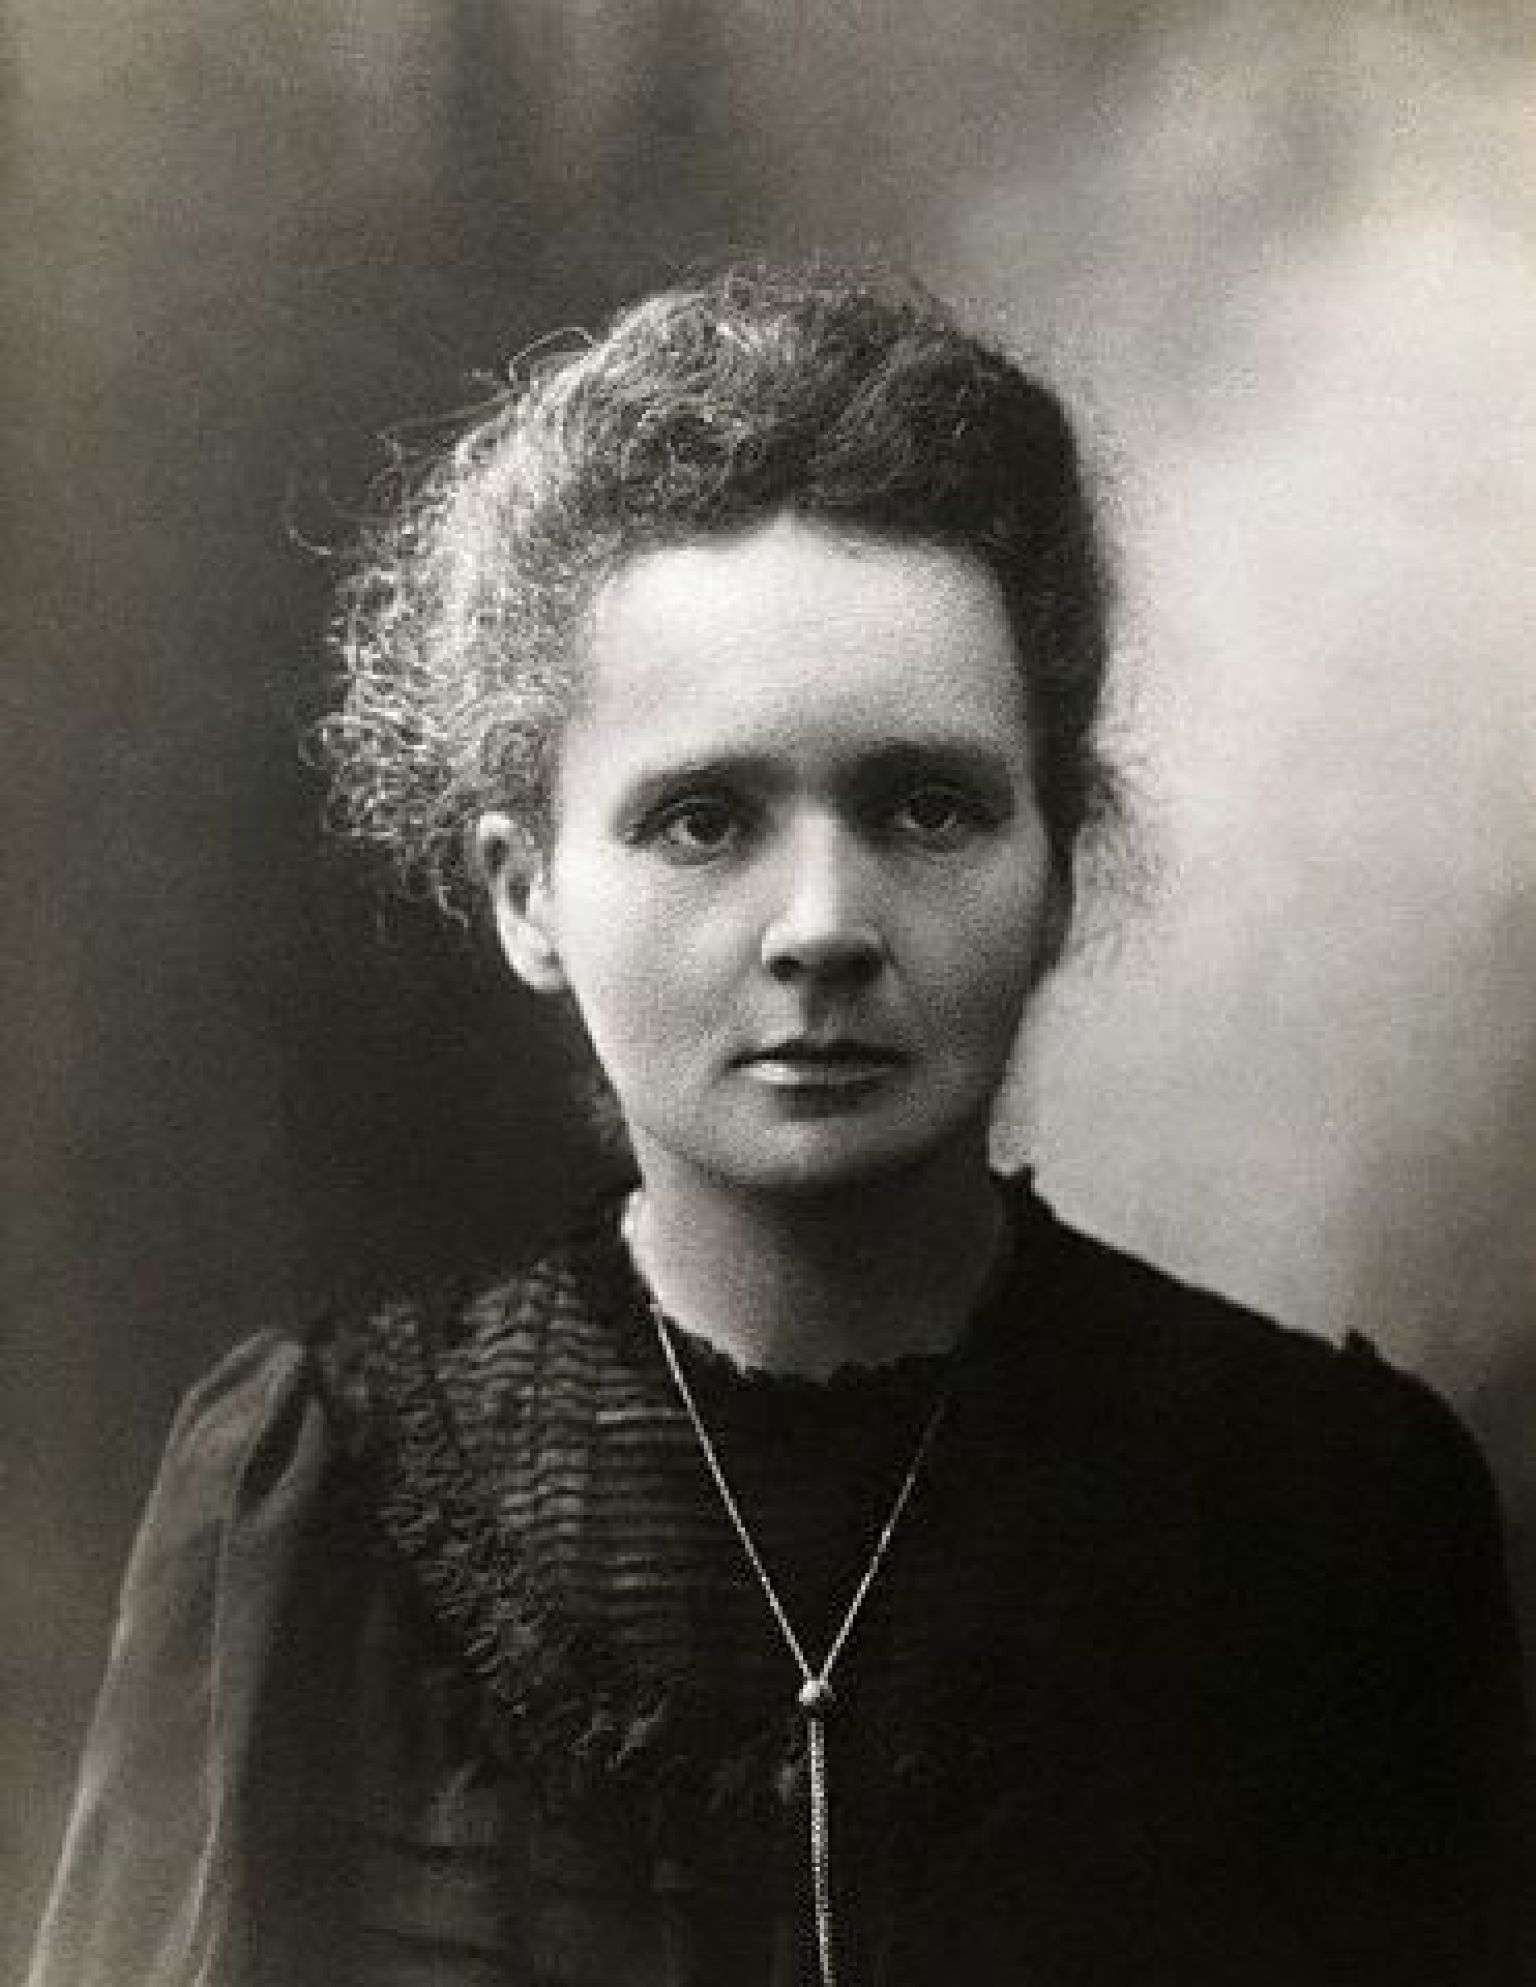 http://upload.wikimedia.org/wikipedia/commons/d/d9/Mariecurie.jpg